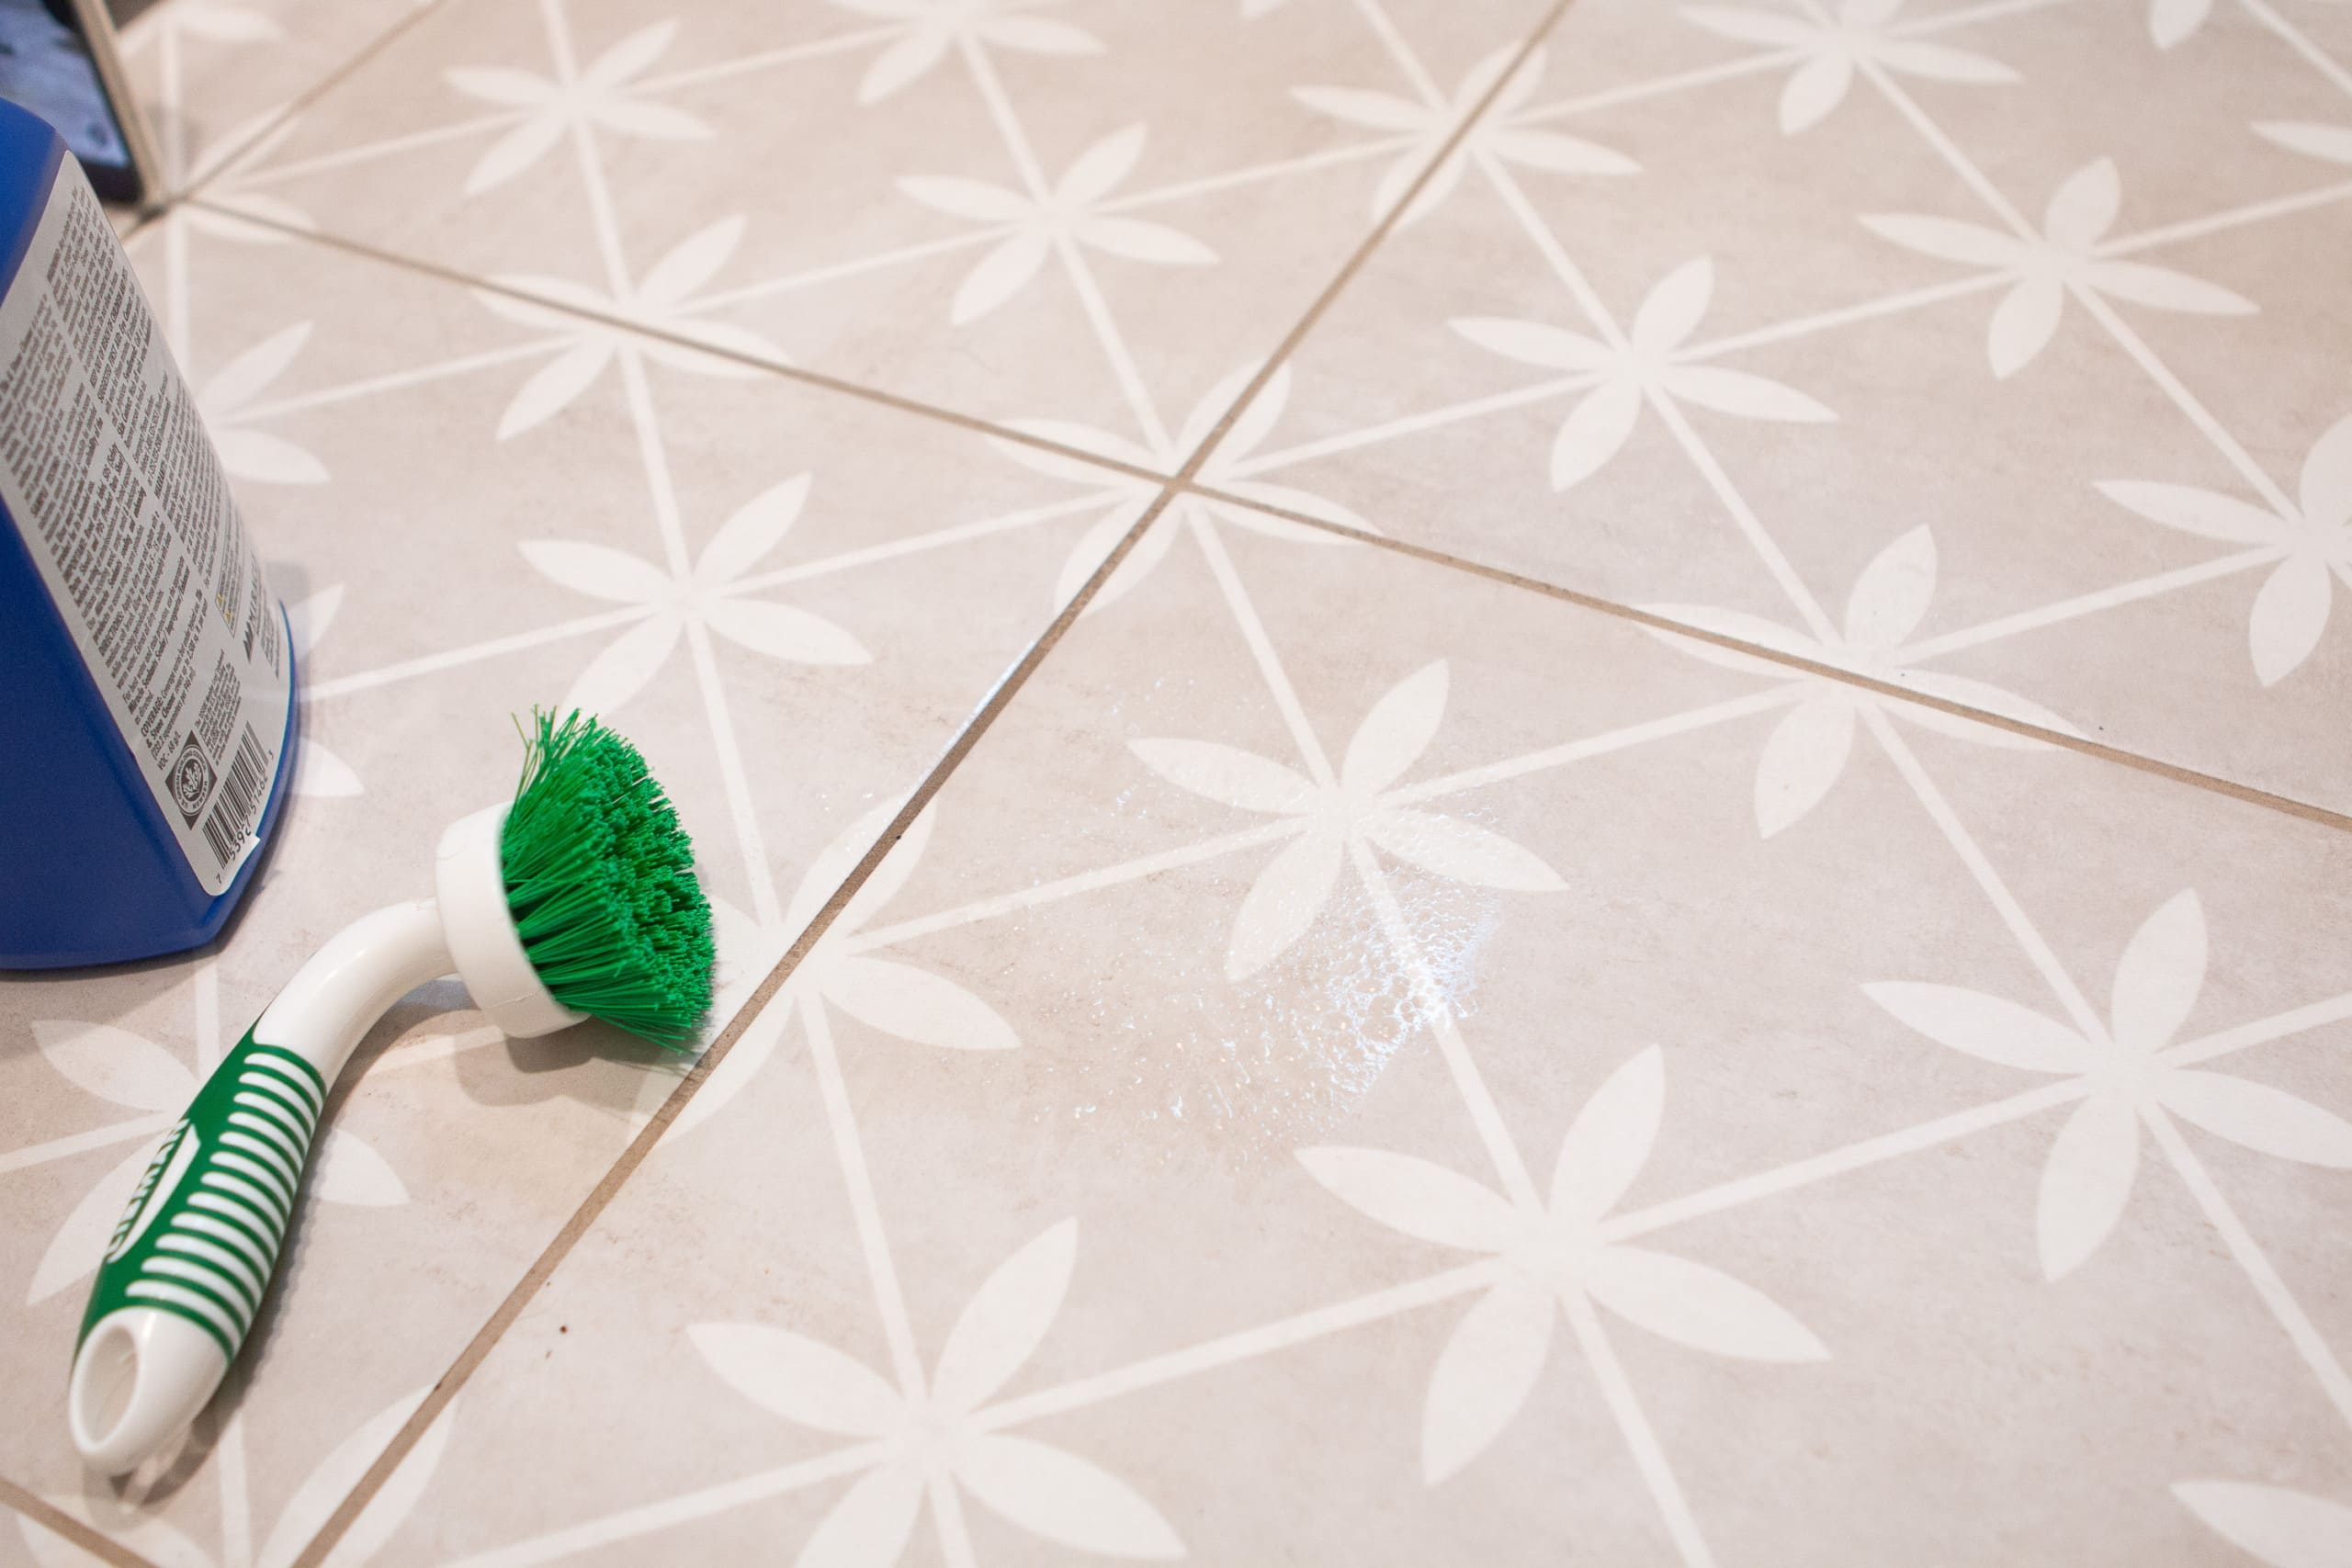 Use a brush to agitate the cleaning solution